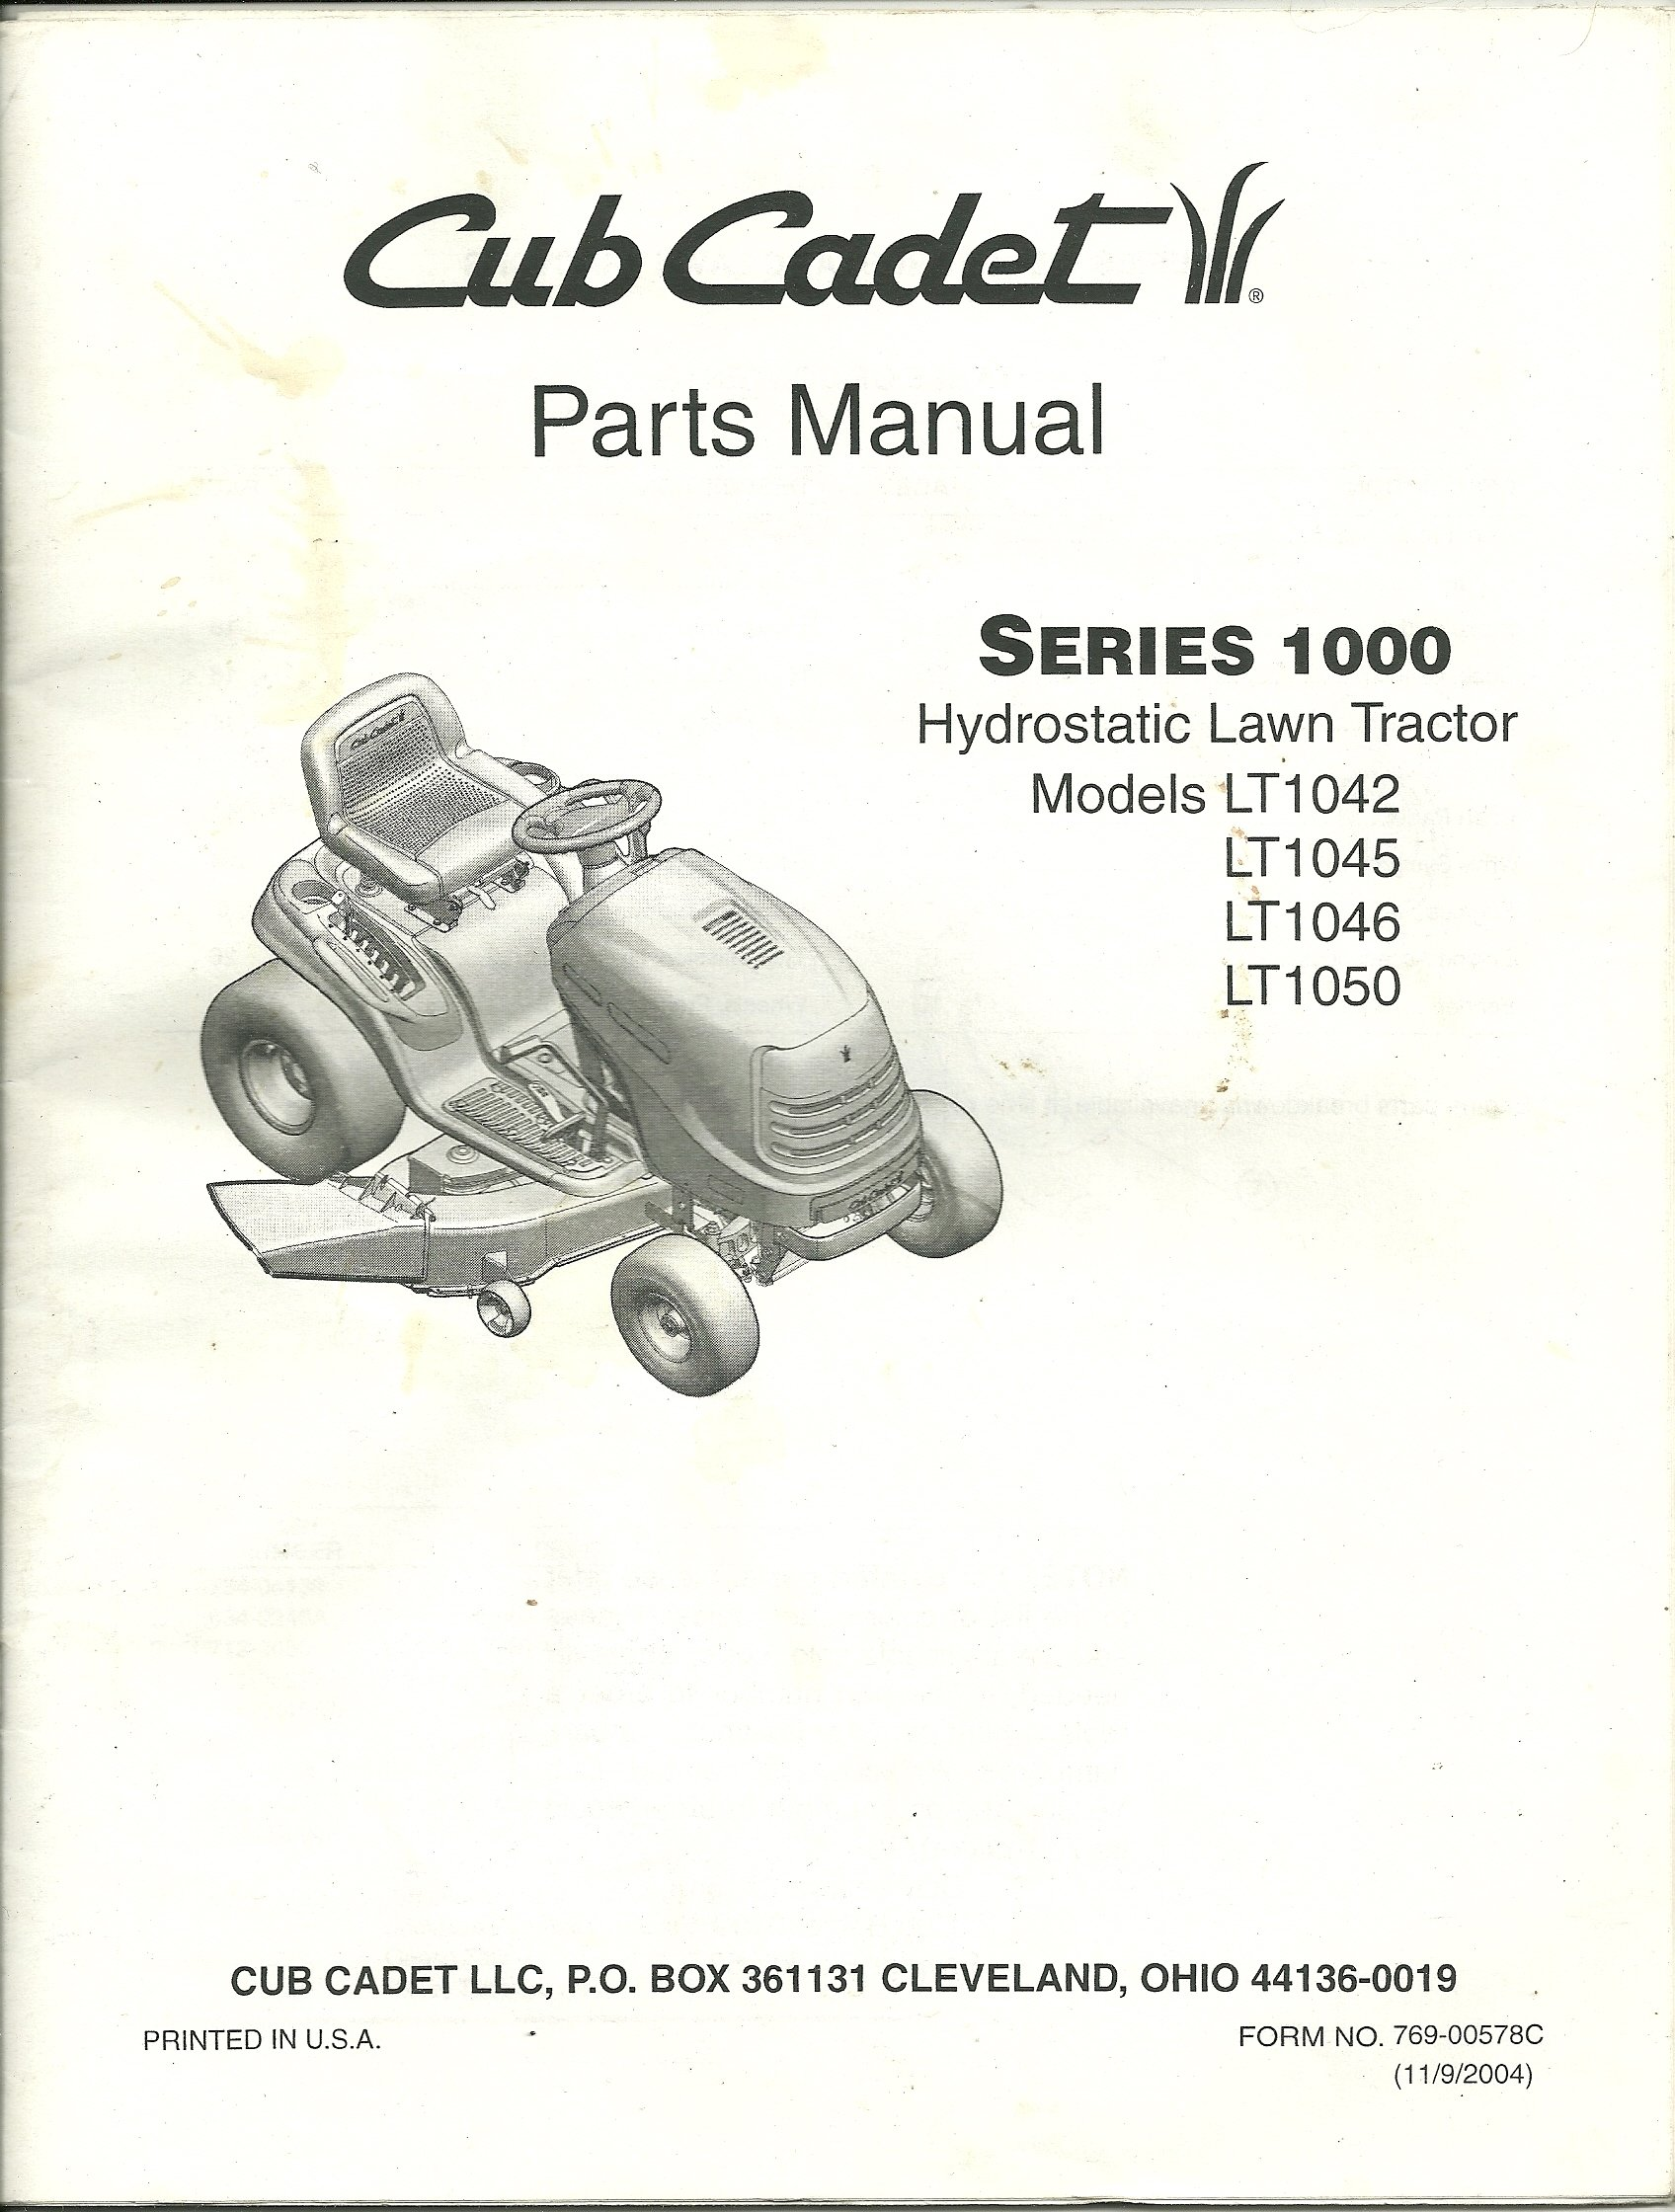 Cub Cadet Lt 1045 Parts Manual One Word Quickstart Guide Book Lt1045 Wiring Diagram Series 1000 Hydrostatic Lawn Tractor Models Rh Amazon Com Belt